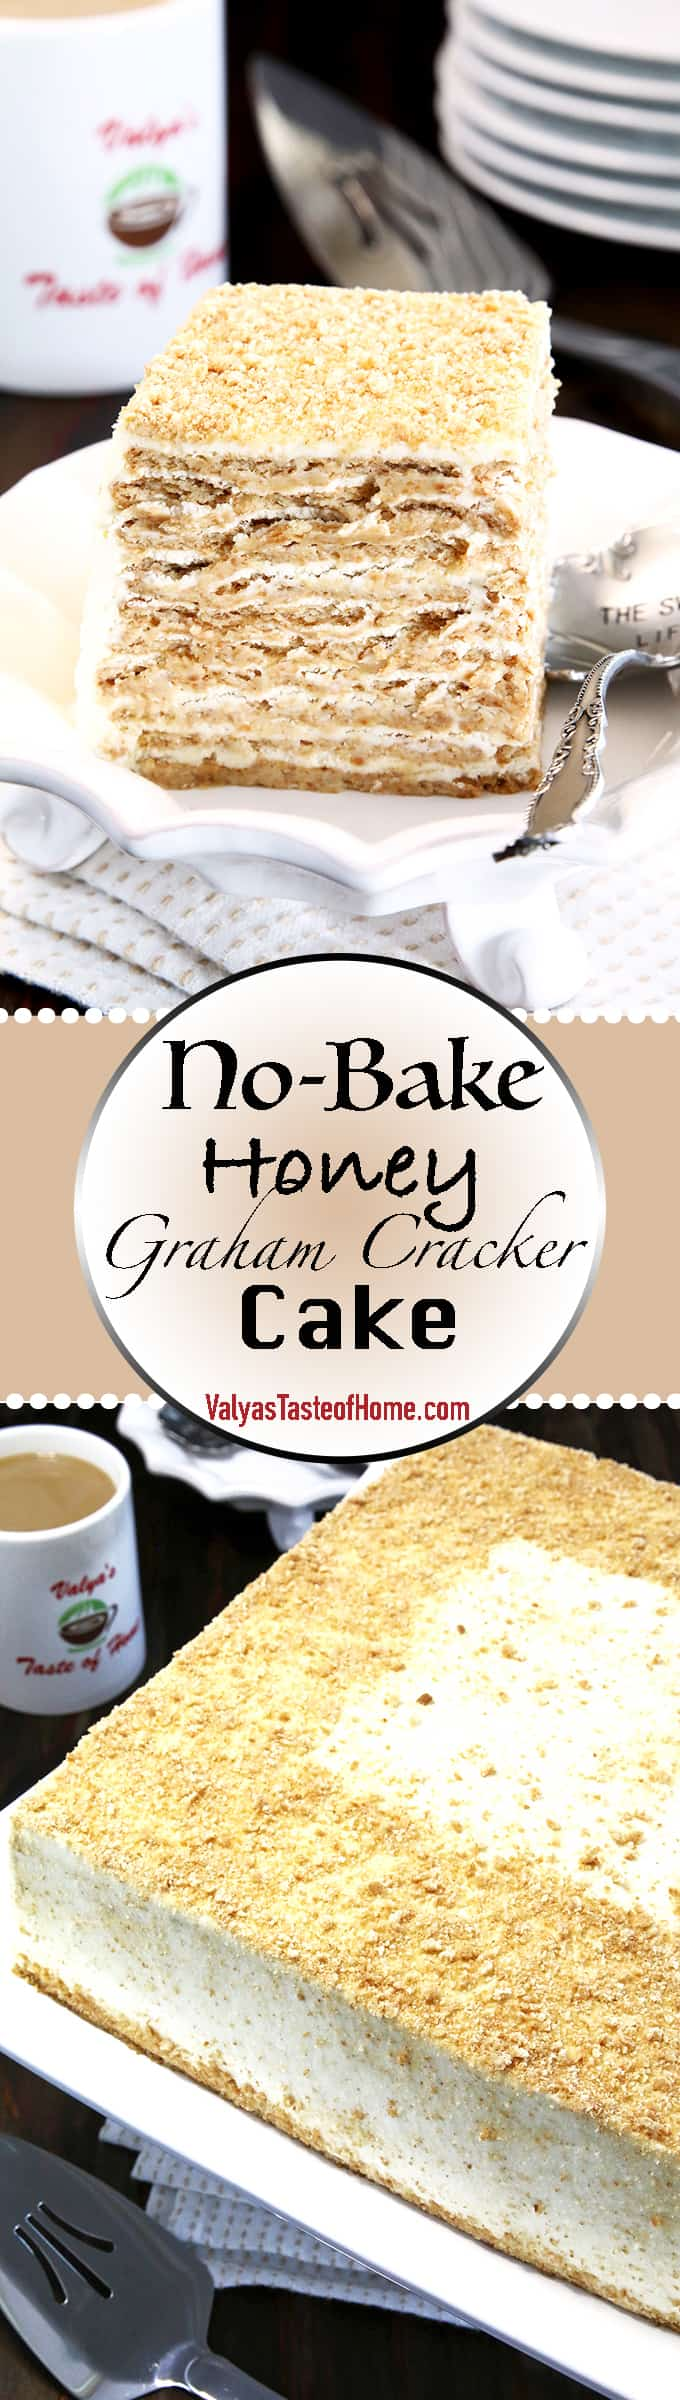 Sometimes we all need a bit of a break from the hot oven, right? Or maybe you're in a time crunch but need to produce a delicious dessert. Well, this No Bake Honey Graham Cracker Cake will come to your rescue! You ONLY need 3 ingredients! No baking required.